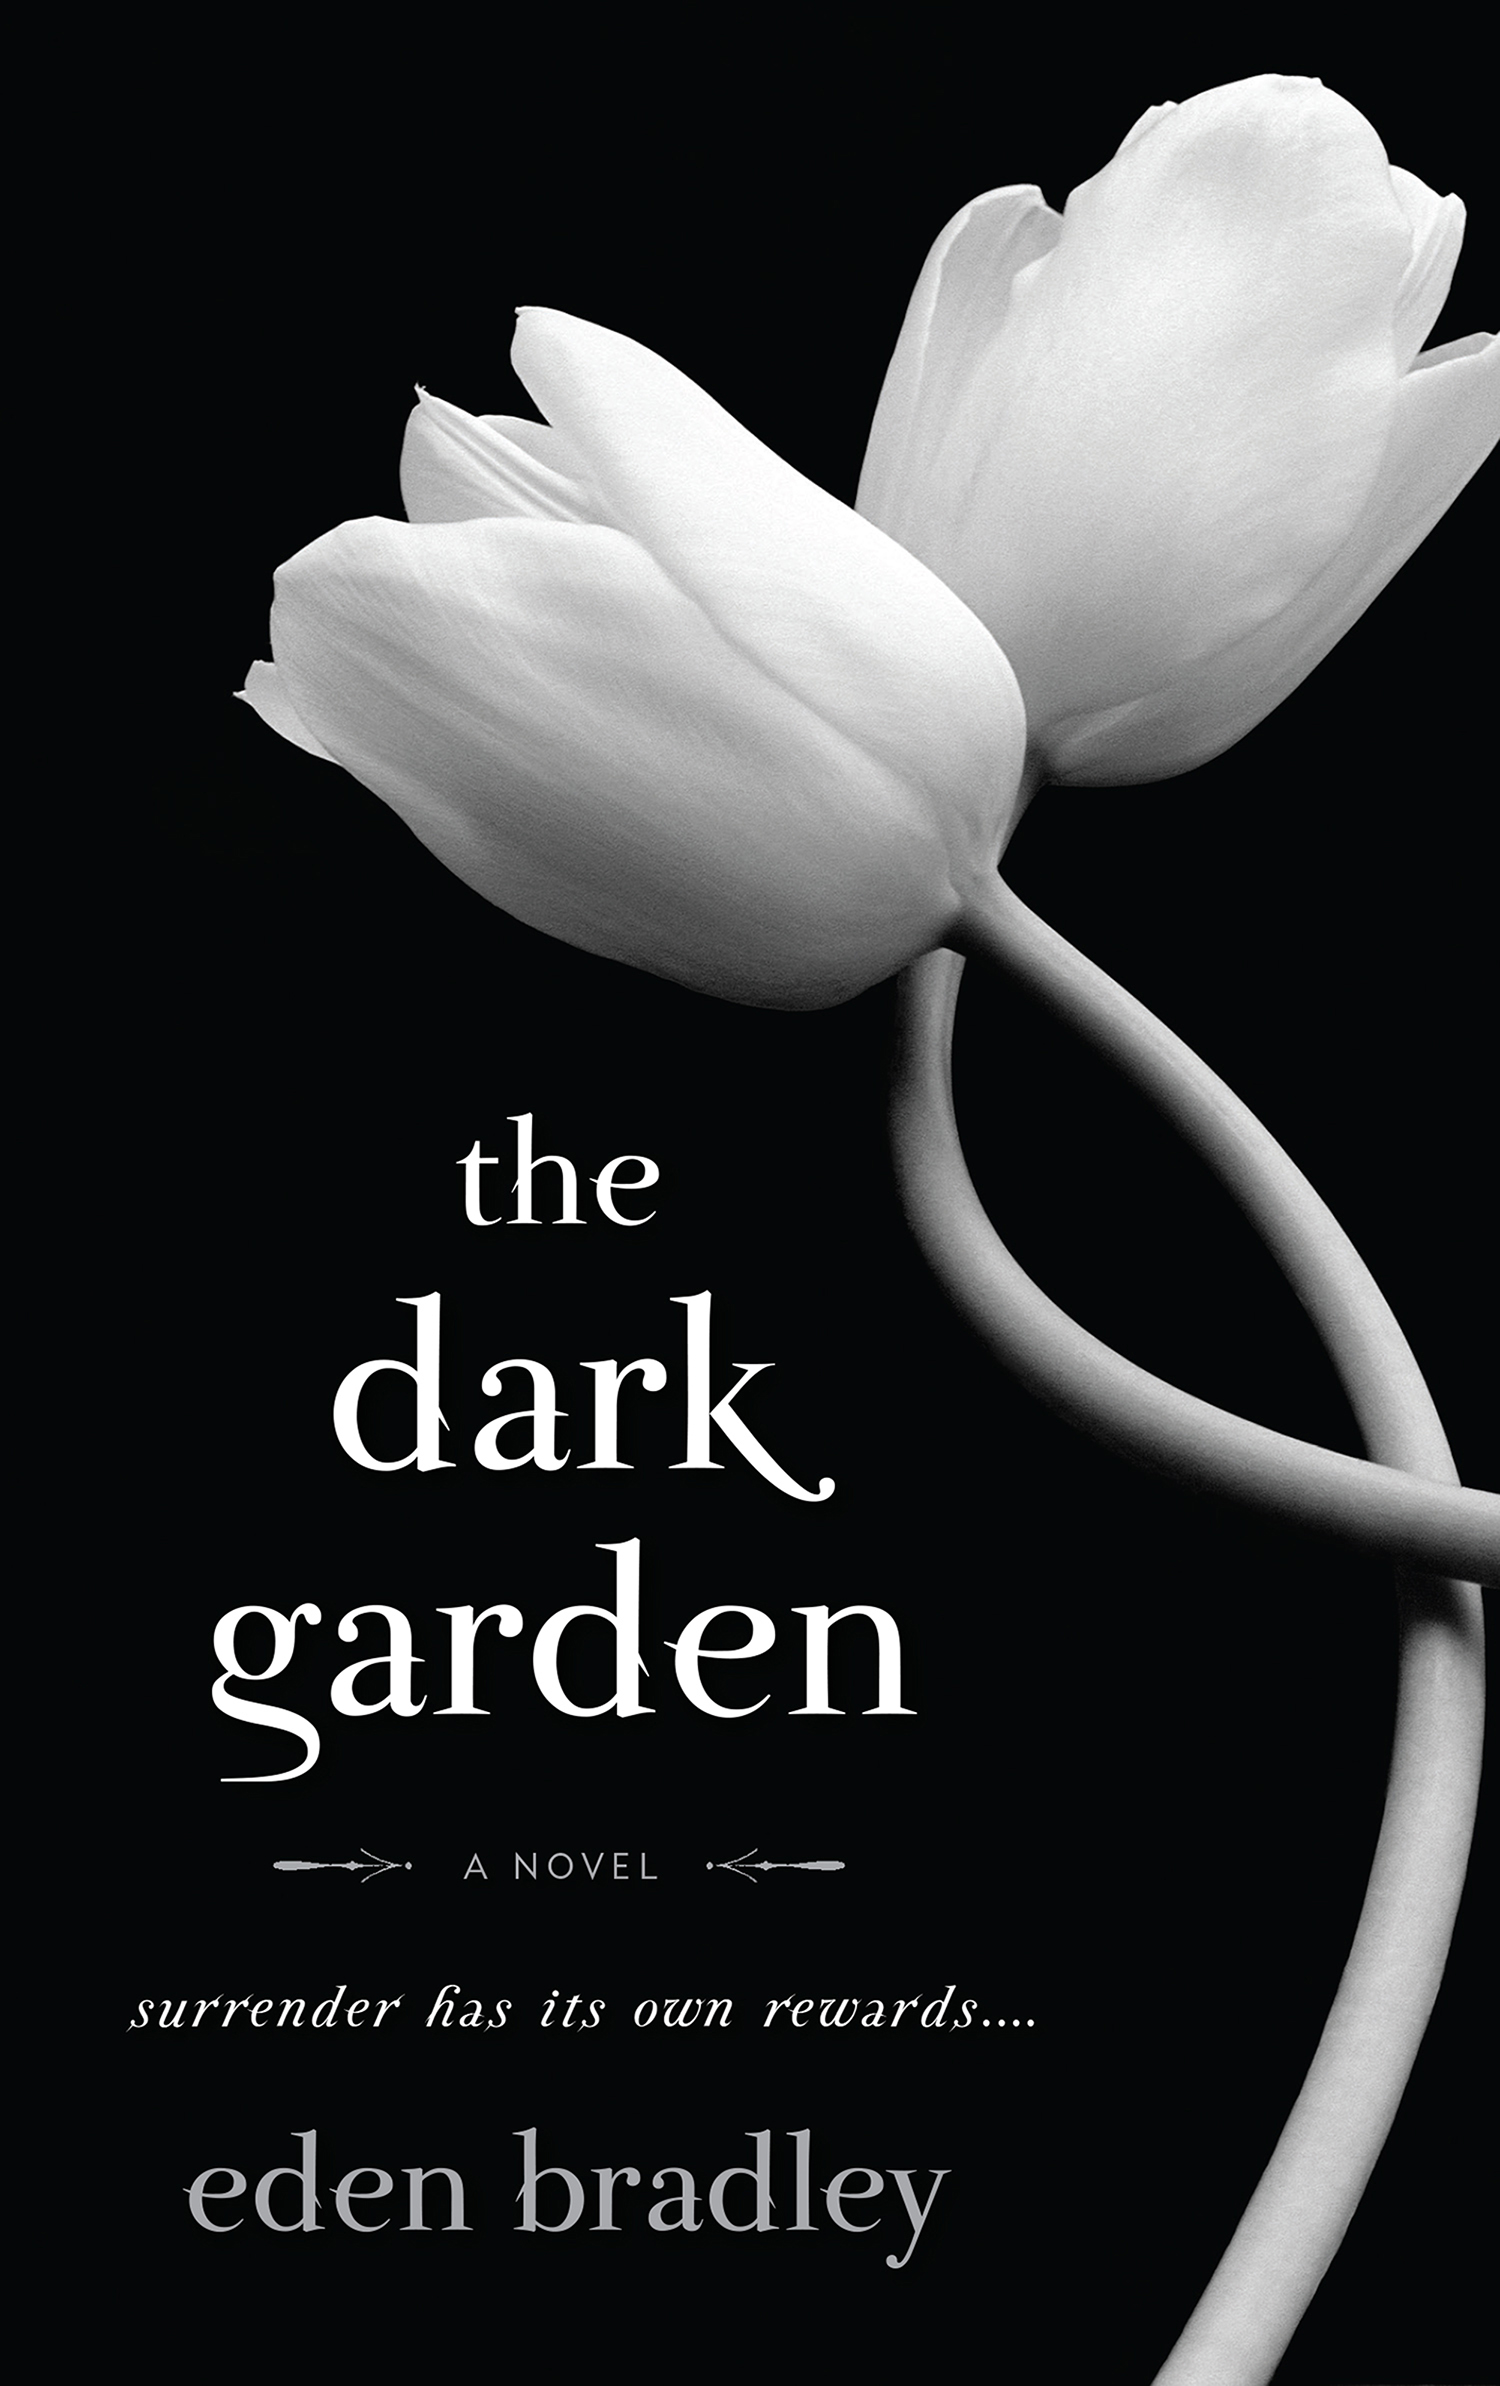 The dark garden misa erder misa erder ccuart Images